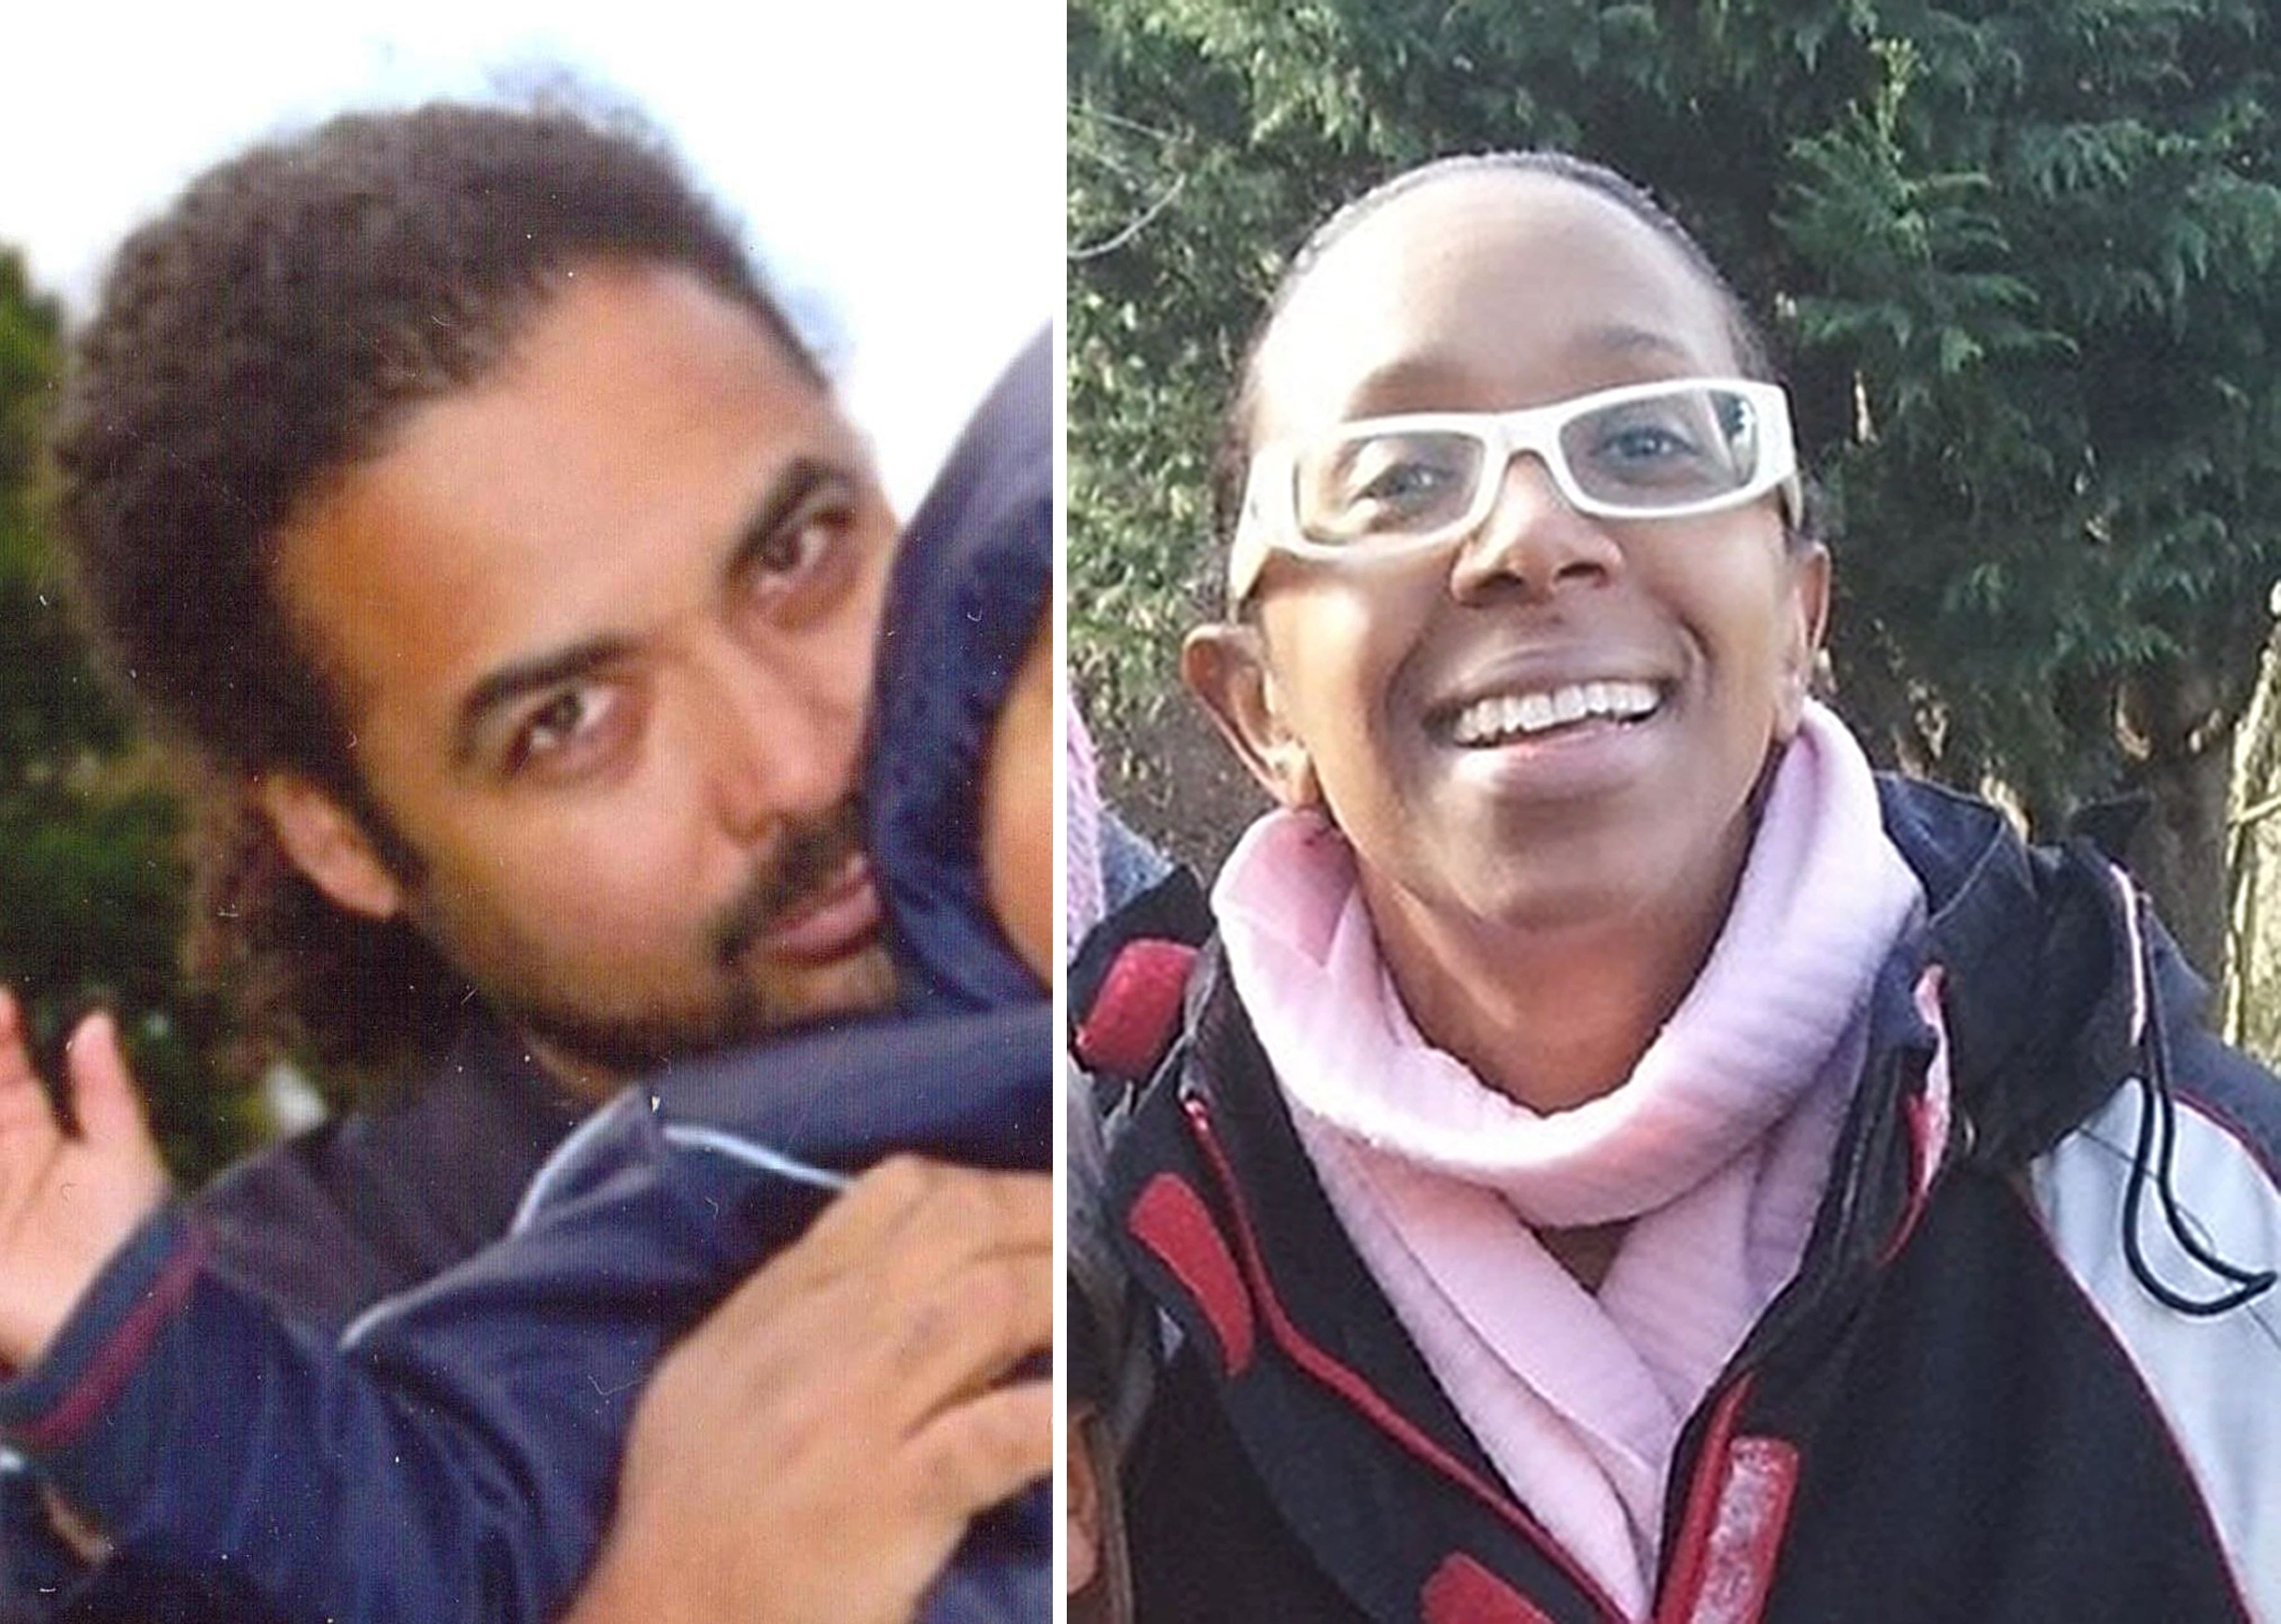 Arthur Simpson-Kent has admitted killing actress Sian Blake and her two sons.